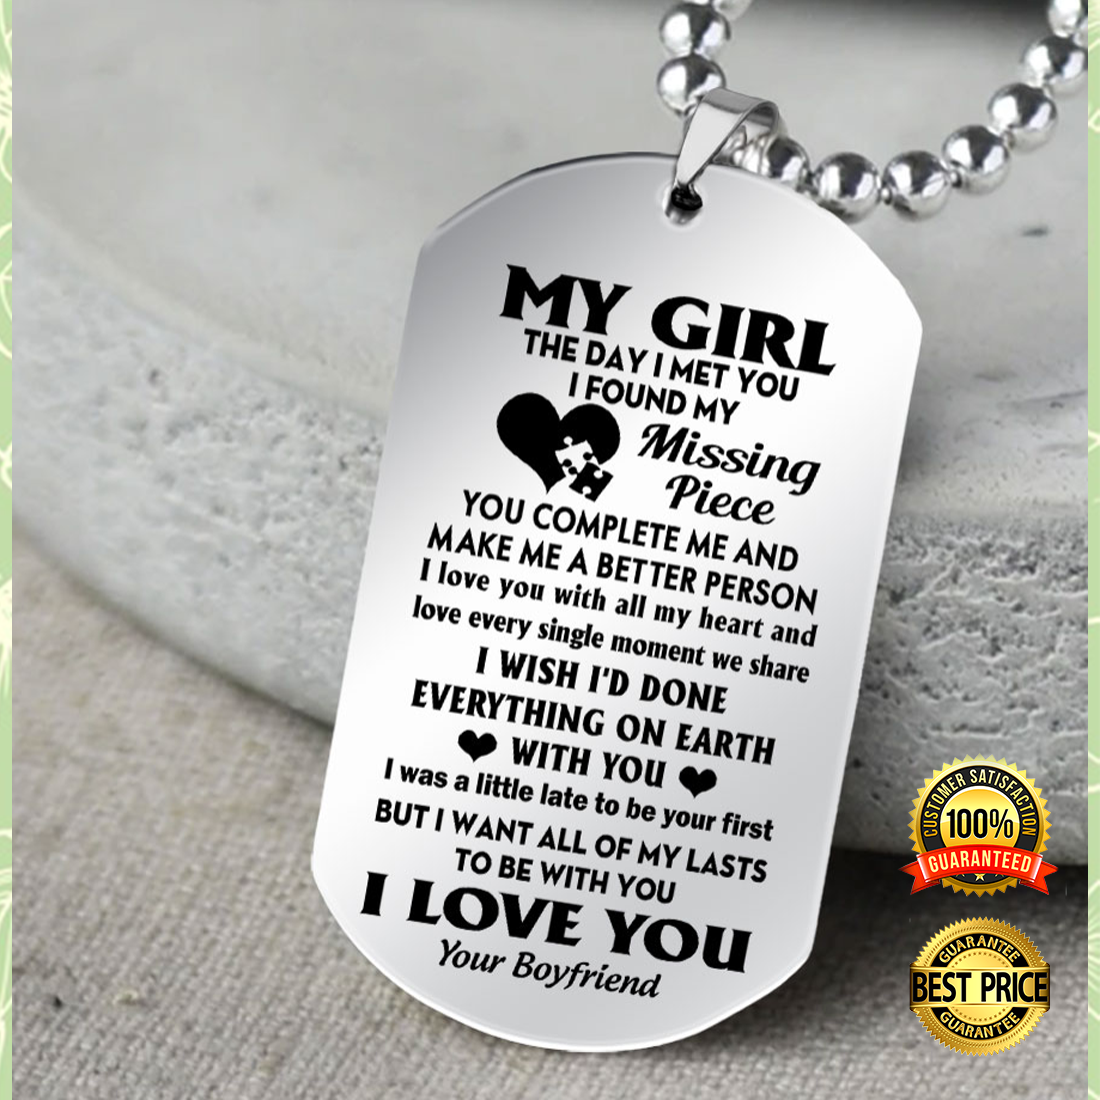 My girl the day i met you i found my missing piece dog tag 5